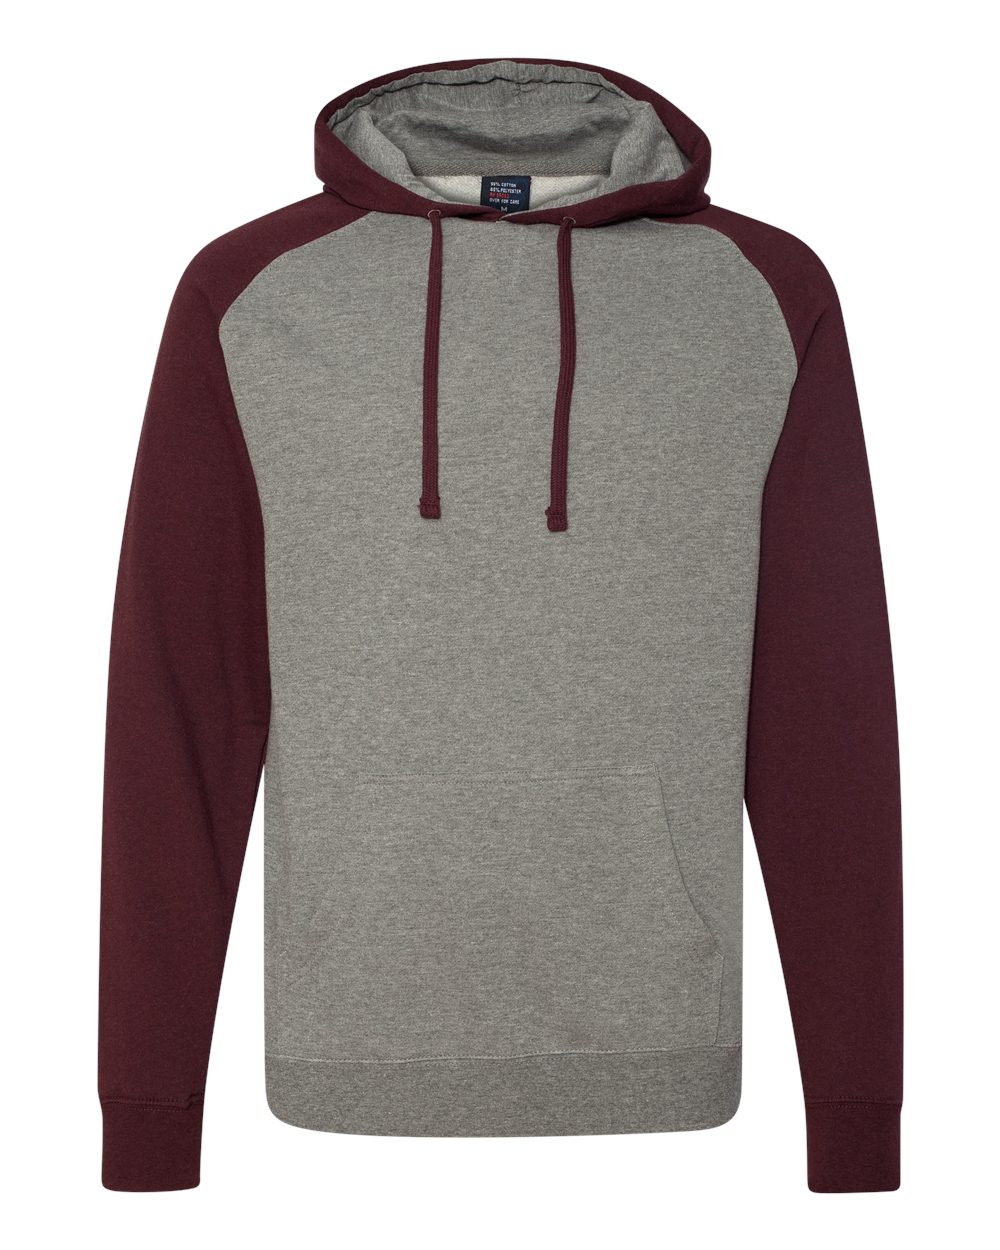 Independent-Trading-Co-Mens-Raglan-Hooded-Pullover-Sweatshirt-IND40RP-up-to-3XL miniature 21